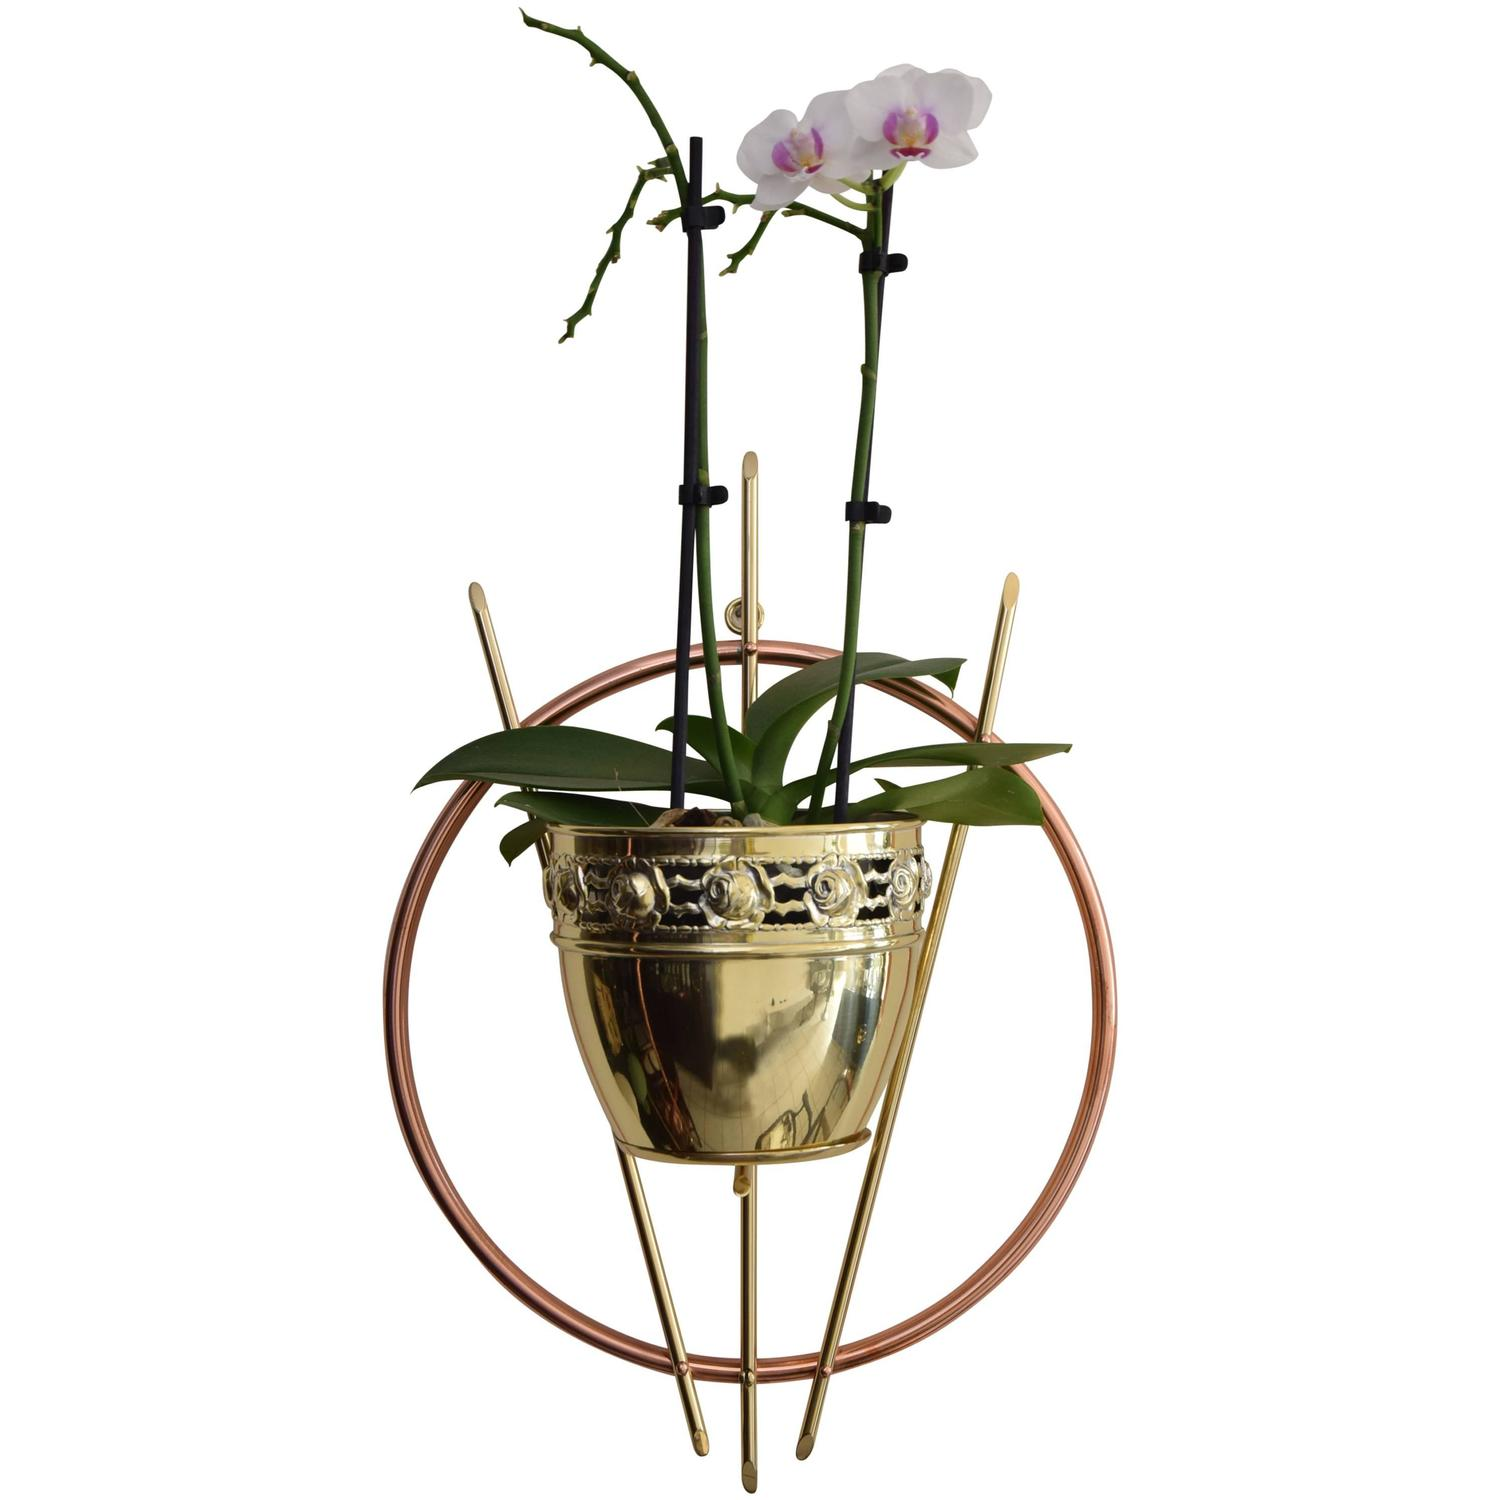 Wall Mounted Plant Holders Wall Mounted Plant Holder For Sale At 1stdibs